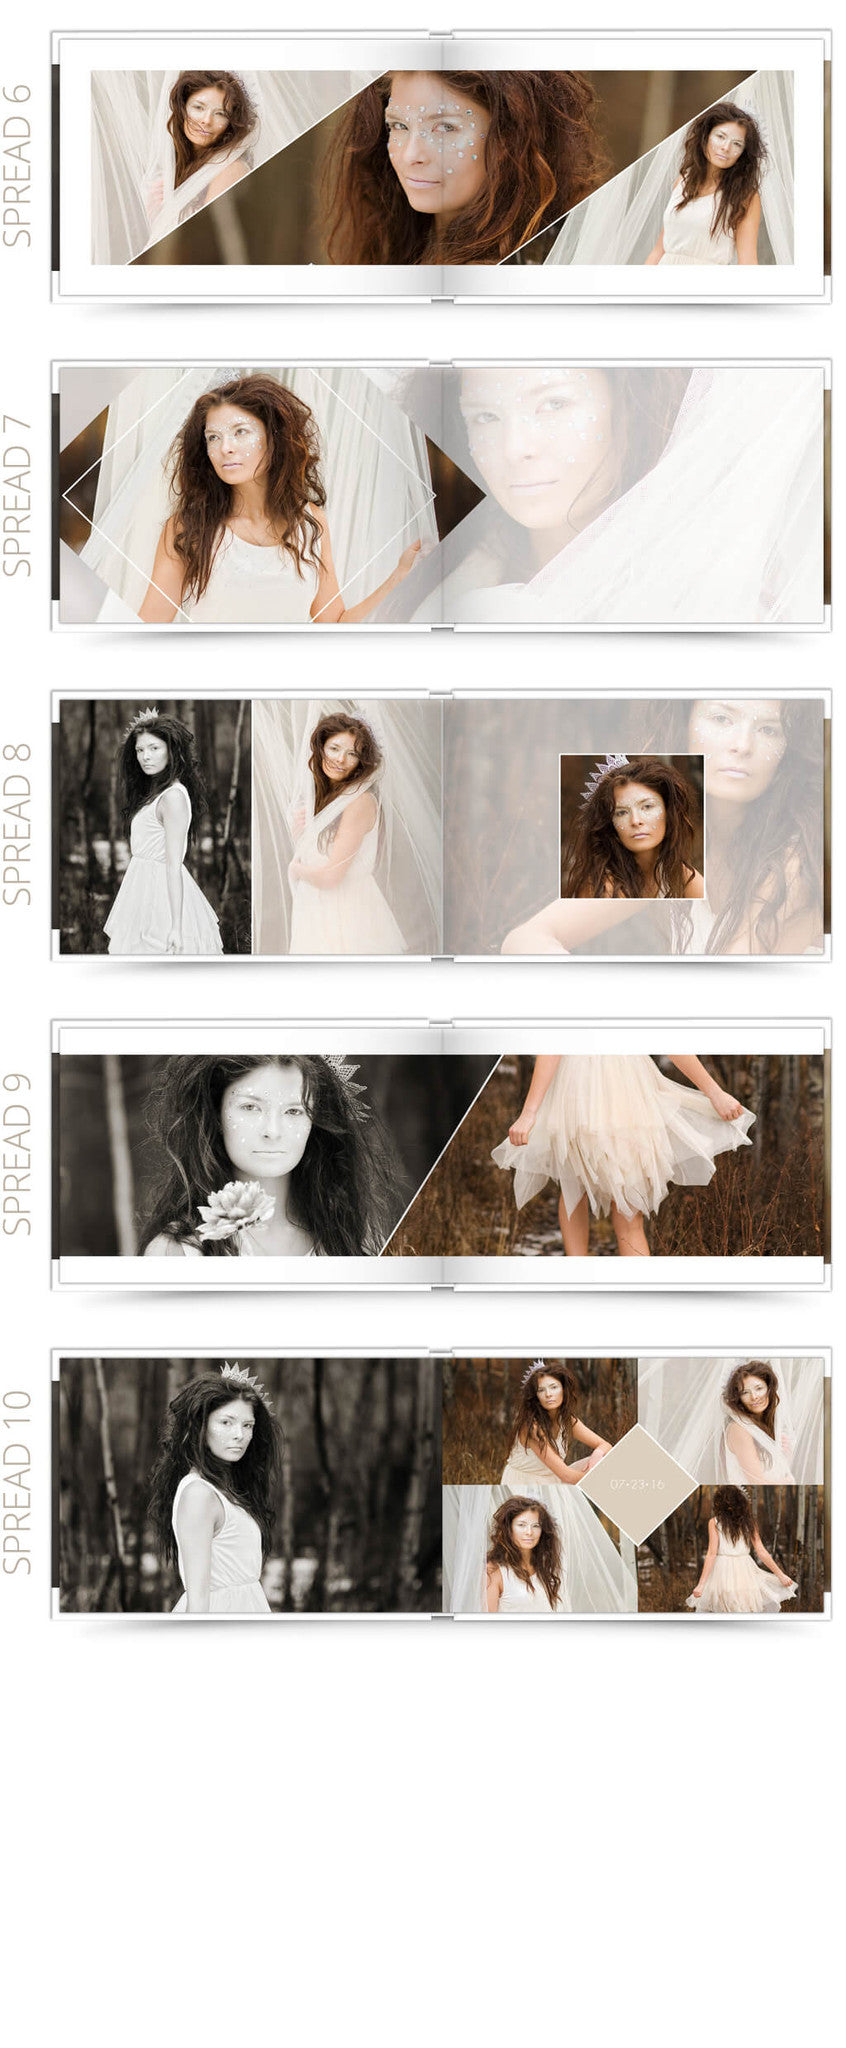 Savannah 12x8 Album Photoshop Templates